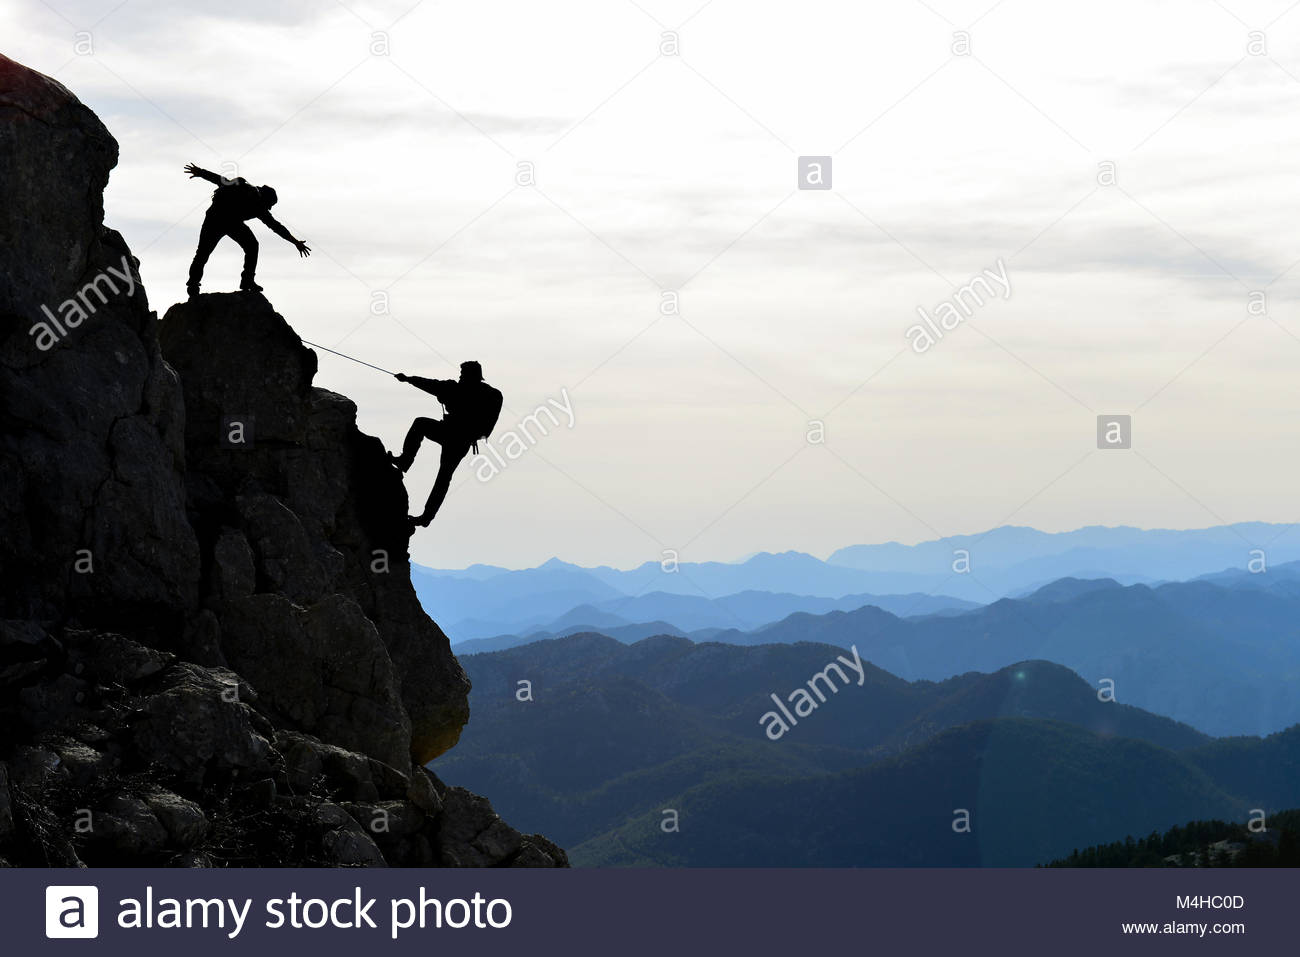 climbers the help,support and interest - Stock Image